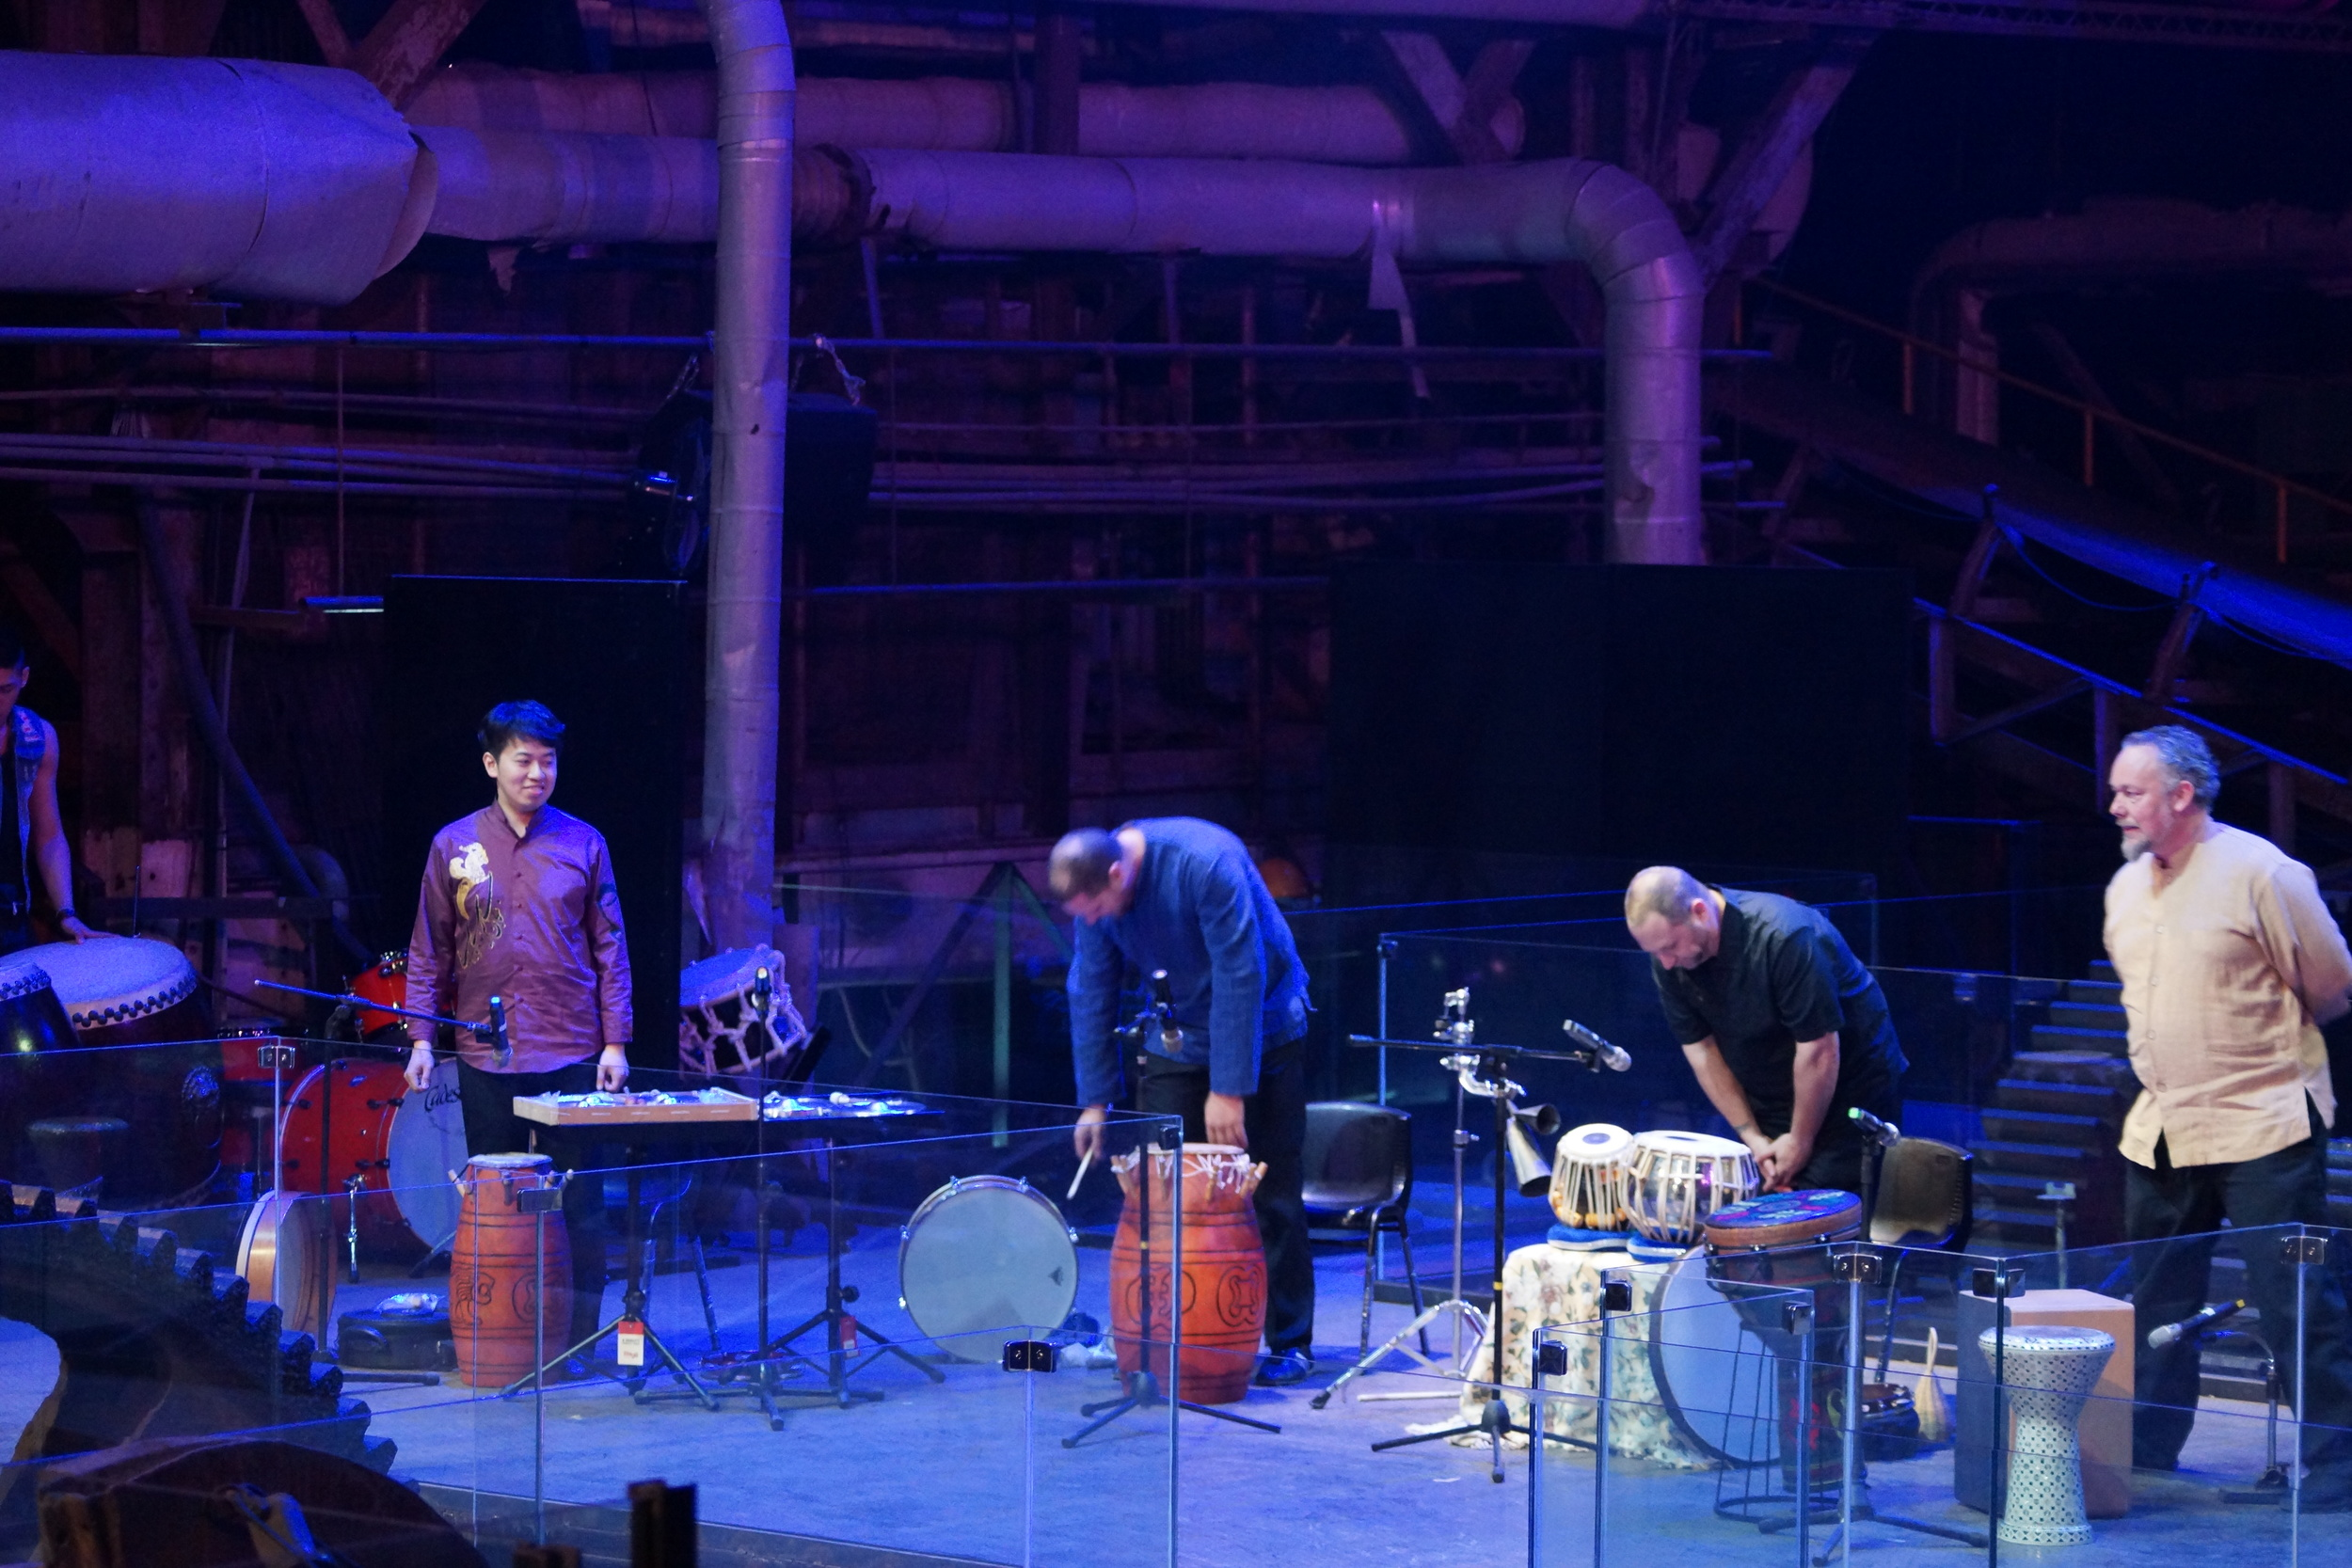 Hands On'Semble.  Opening concert of the 2016 Tainan International Drum Festival. Ten Drum, Tainan Taiwan. February 8th, 2016